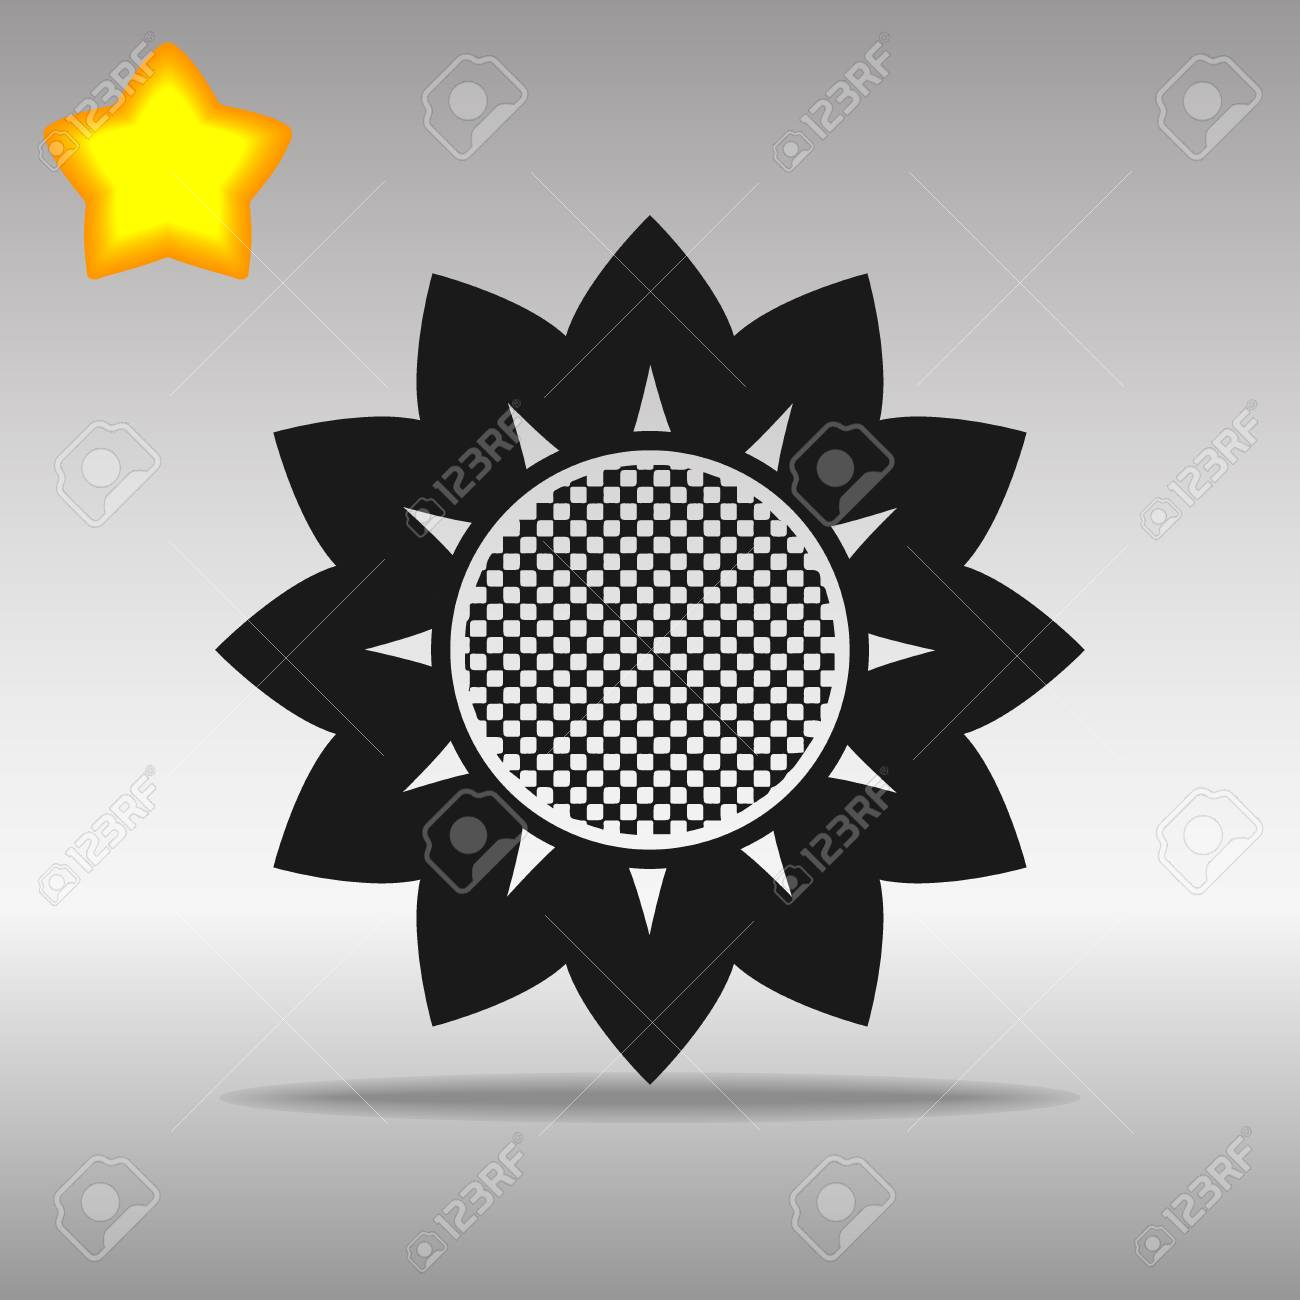 flower black Icon button logo symbol concept high quality on the gray background - 82176374